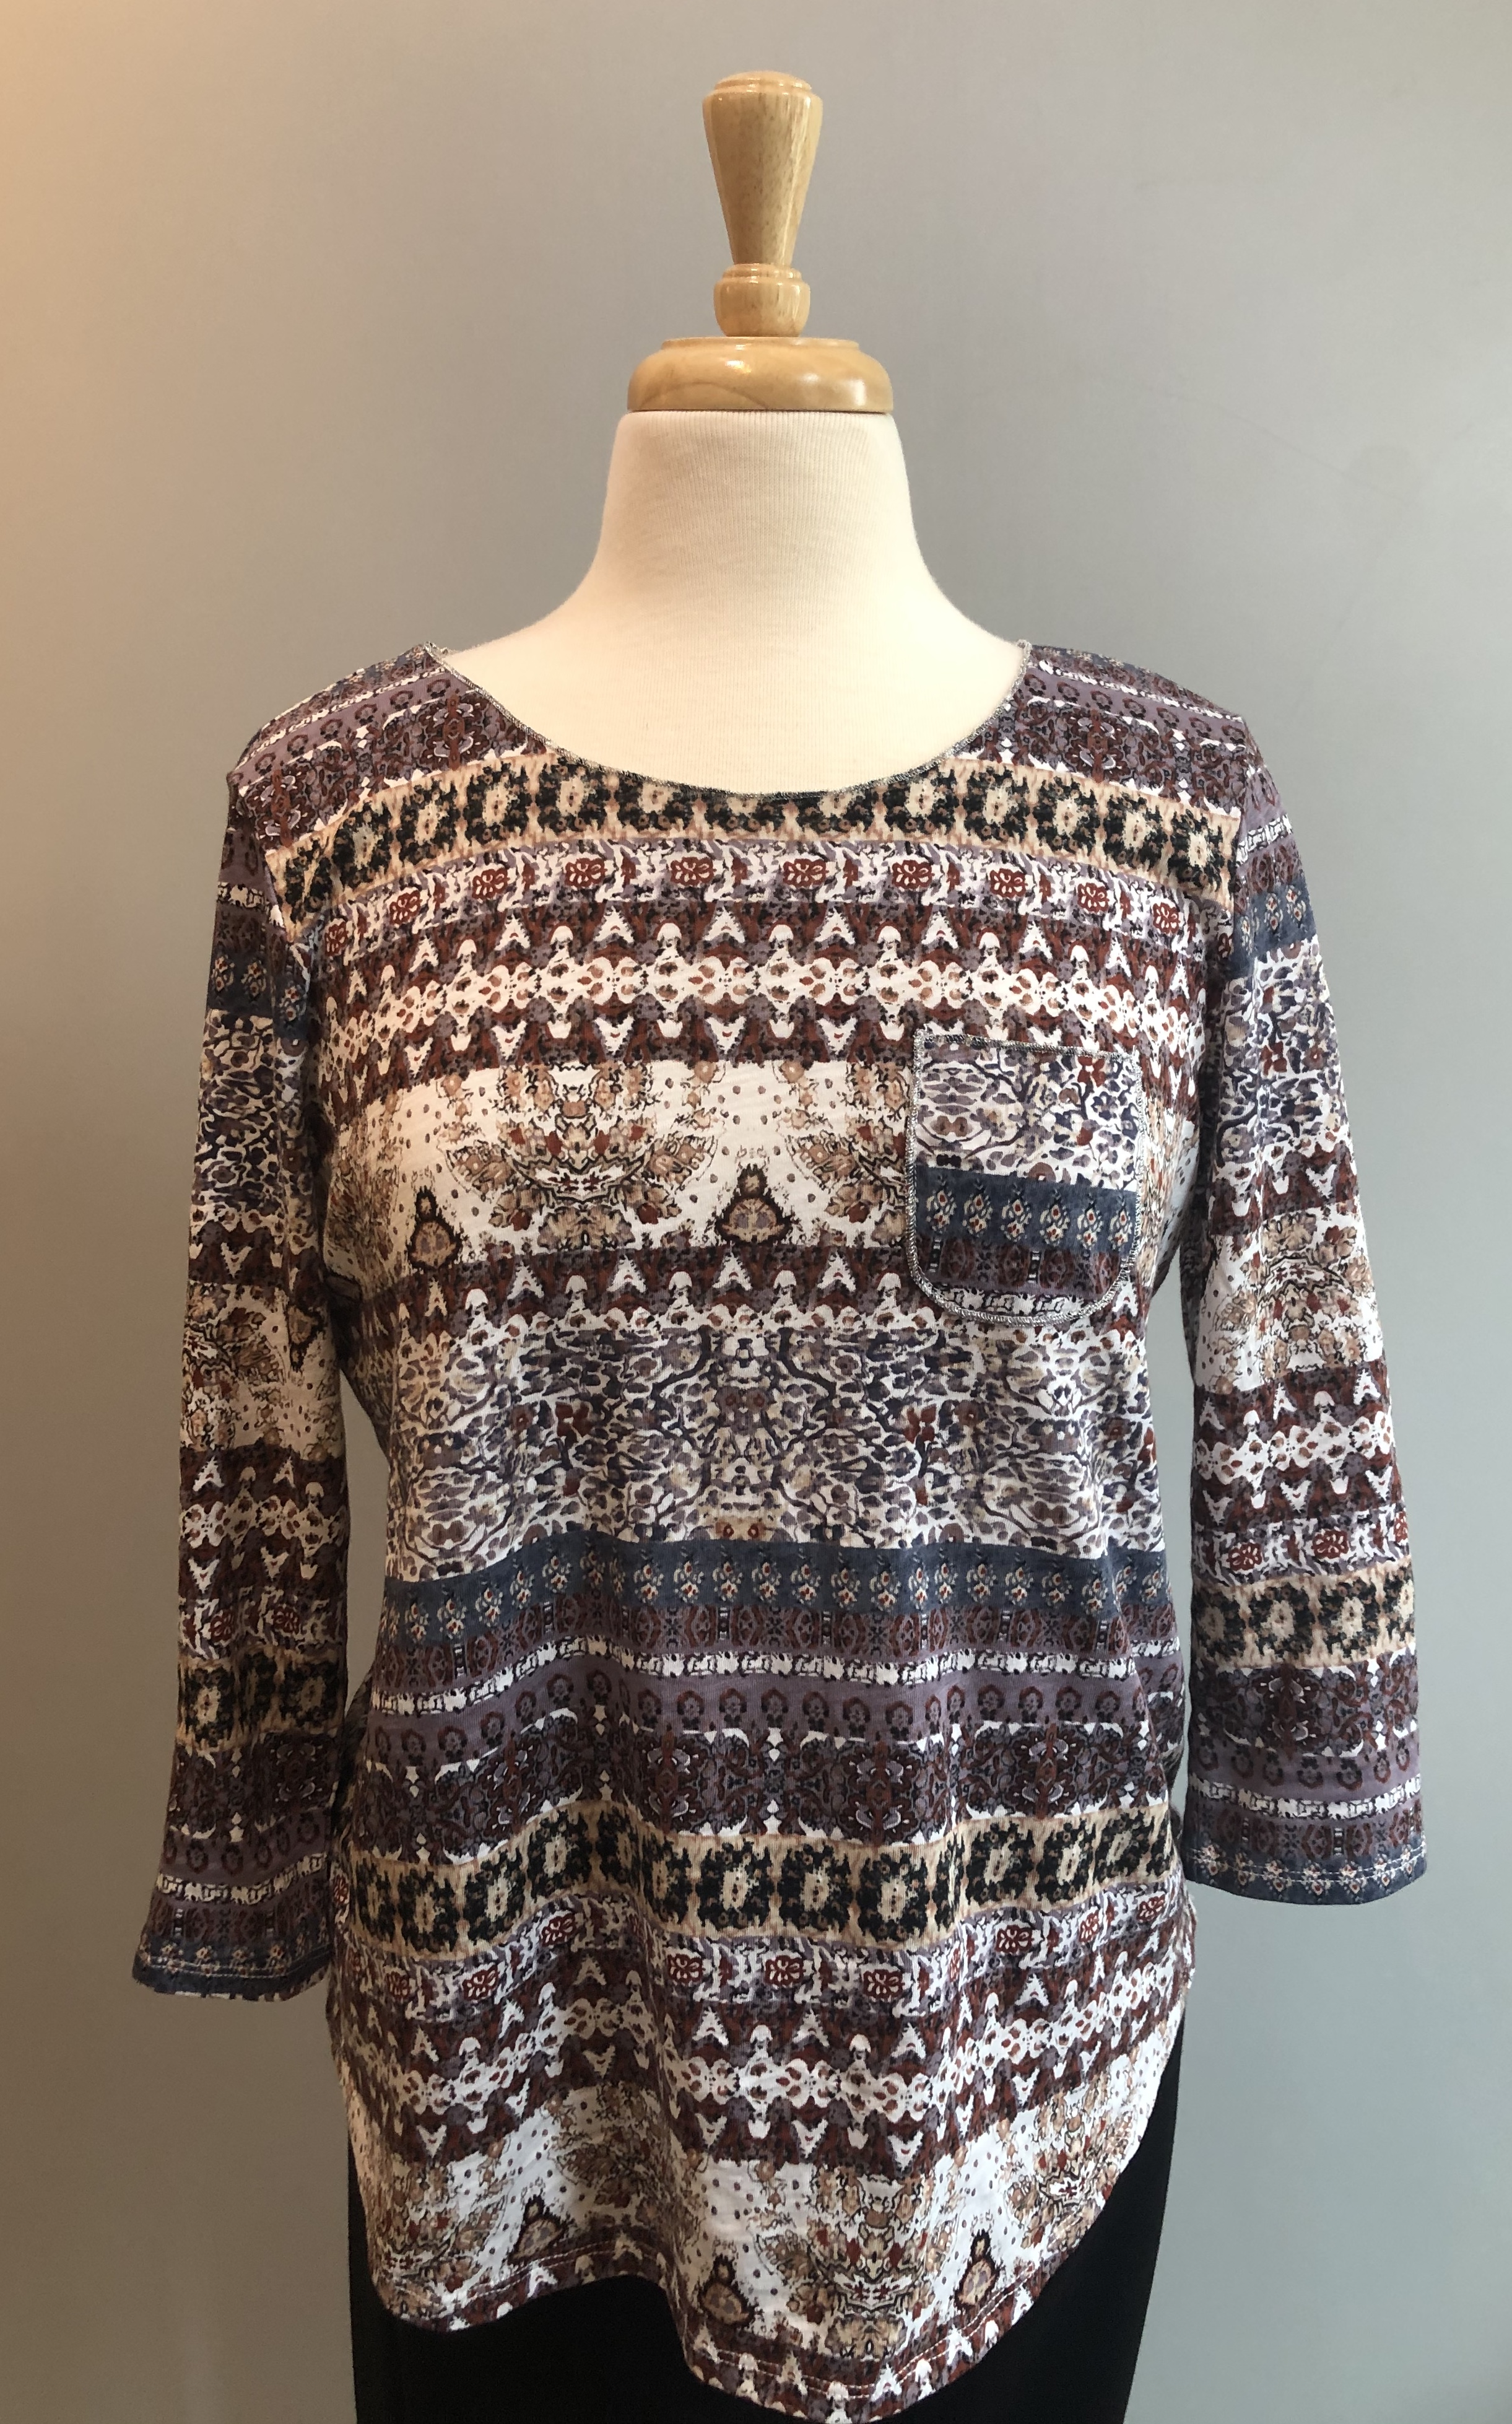 Tribal Top $59